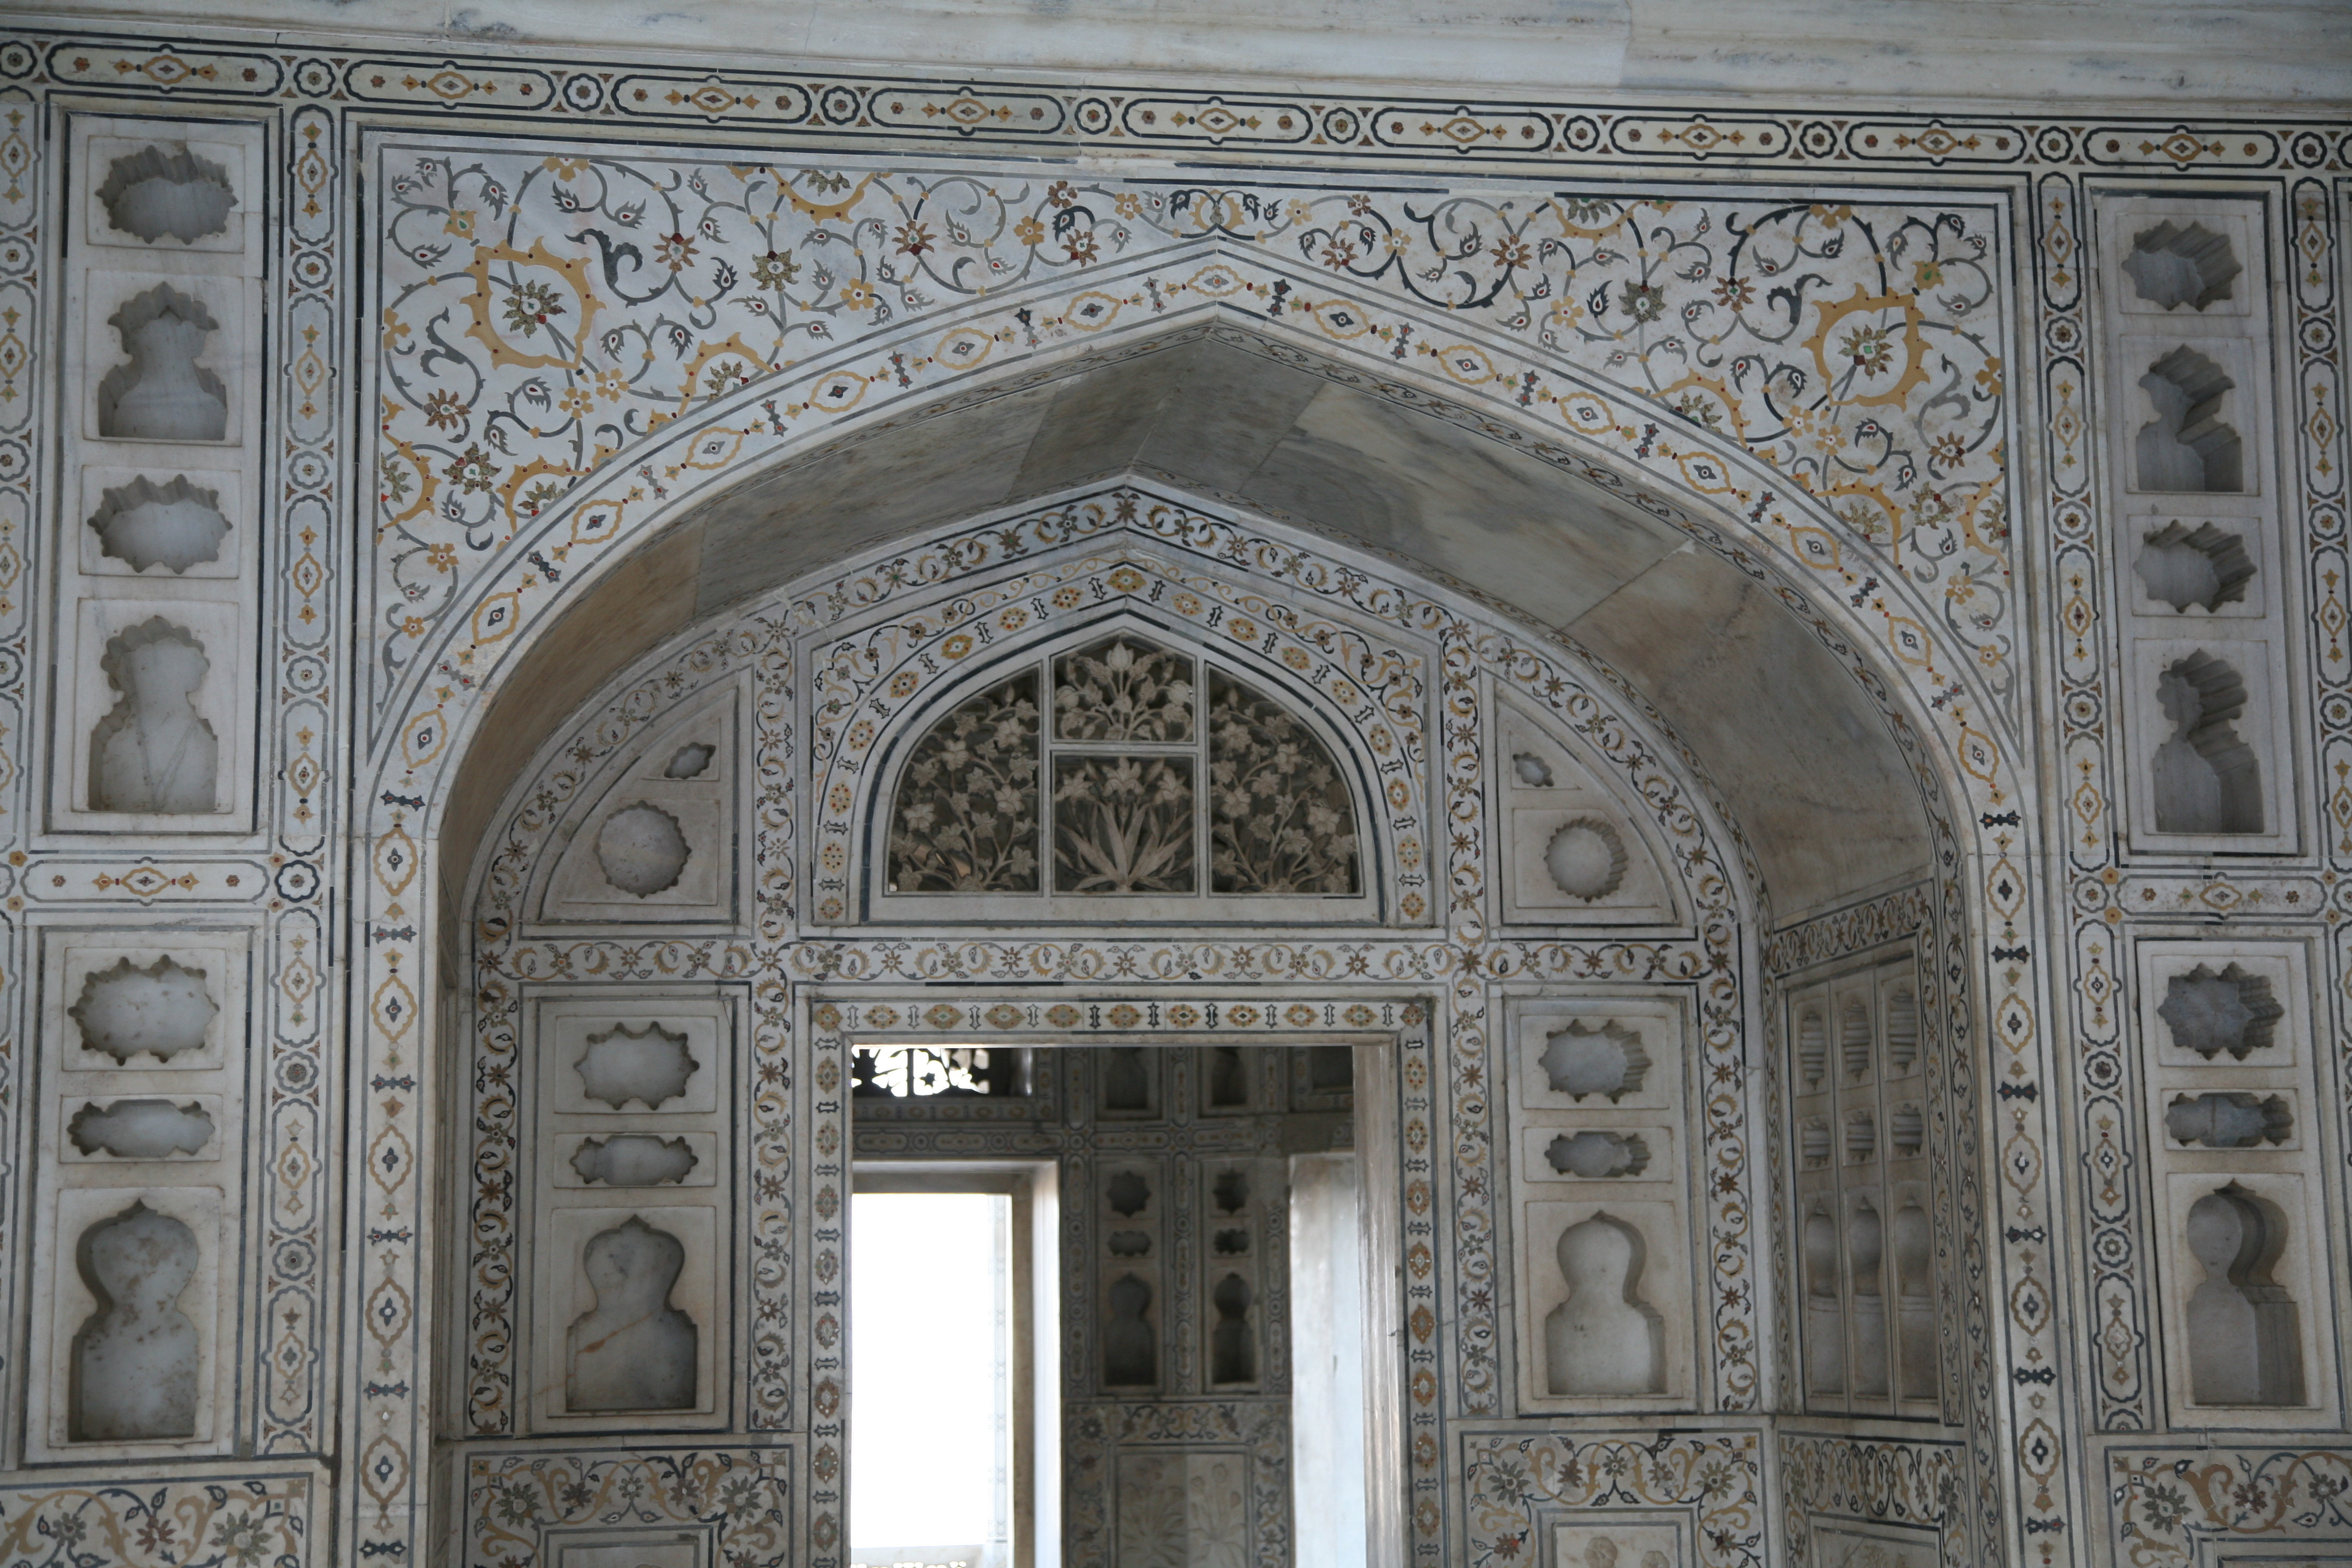 An analysis of the islamic art and architecture